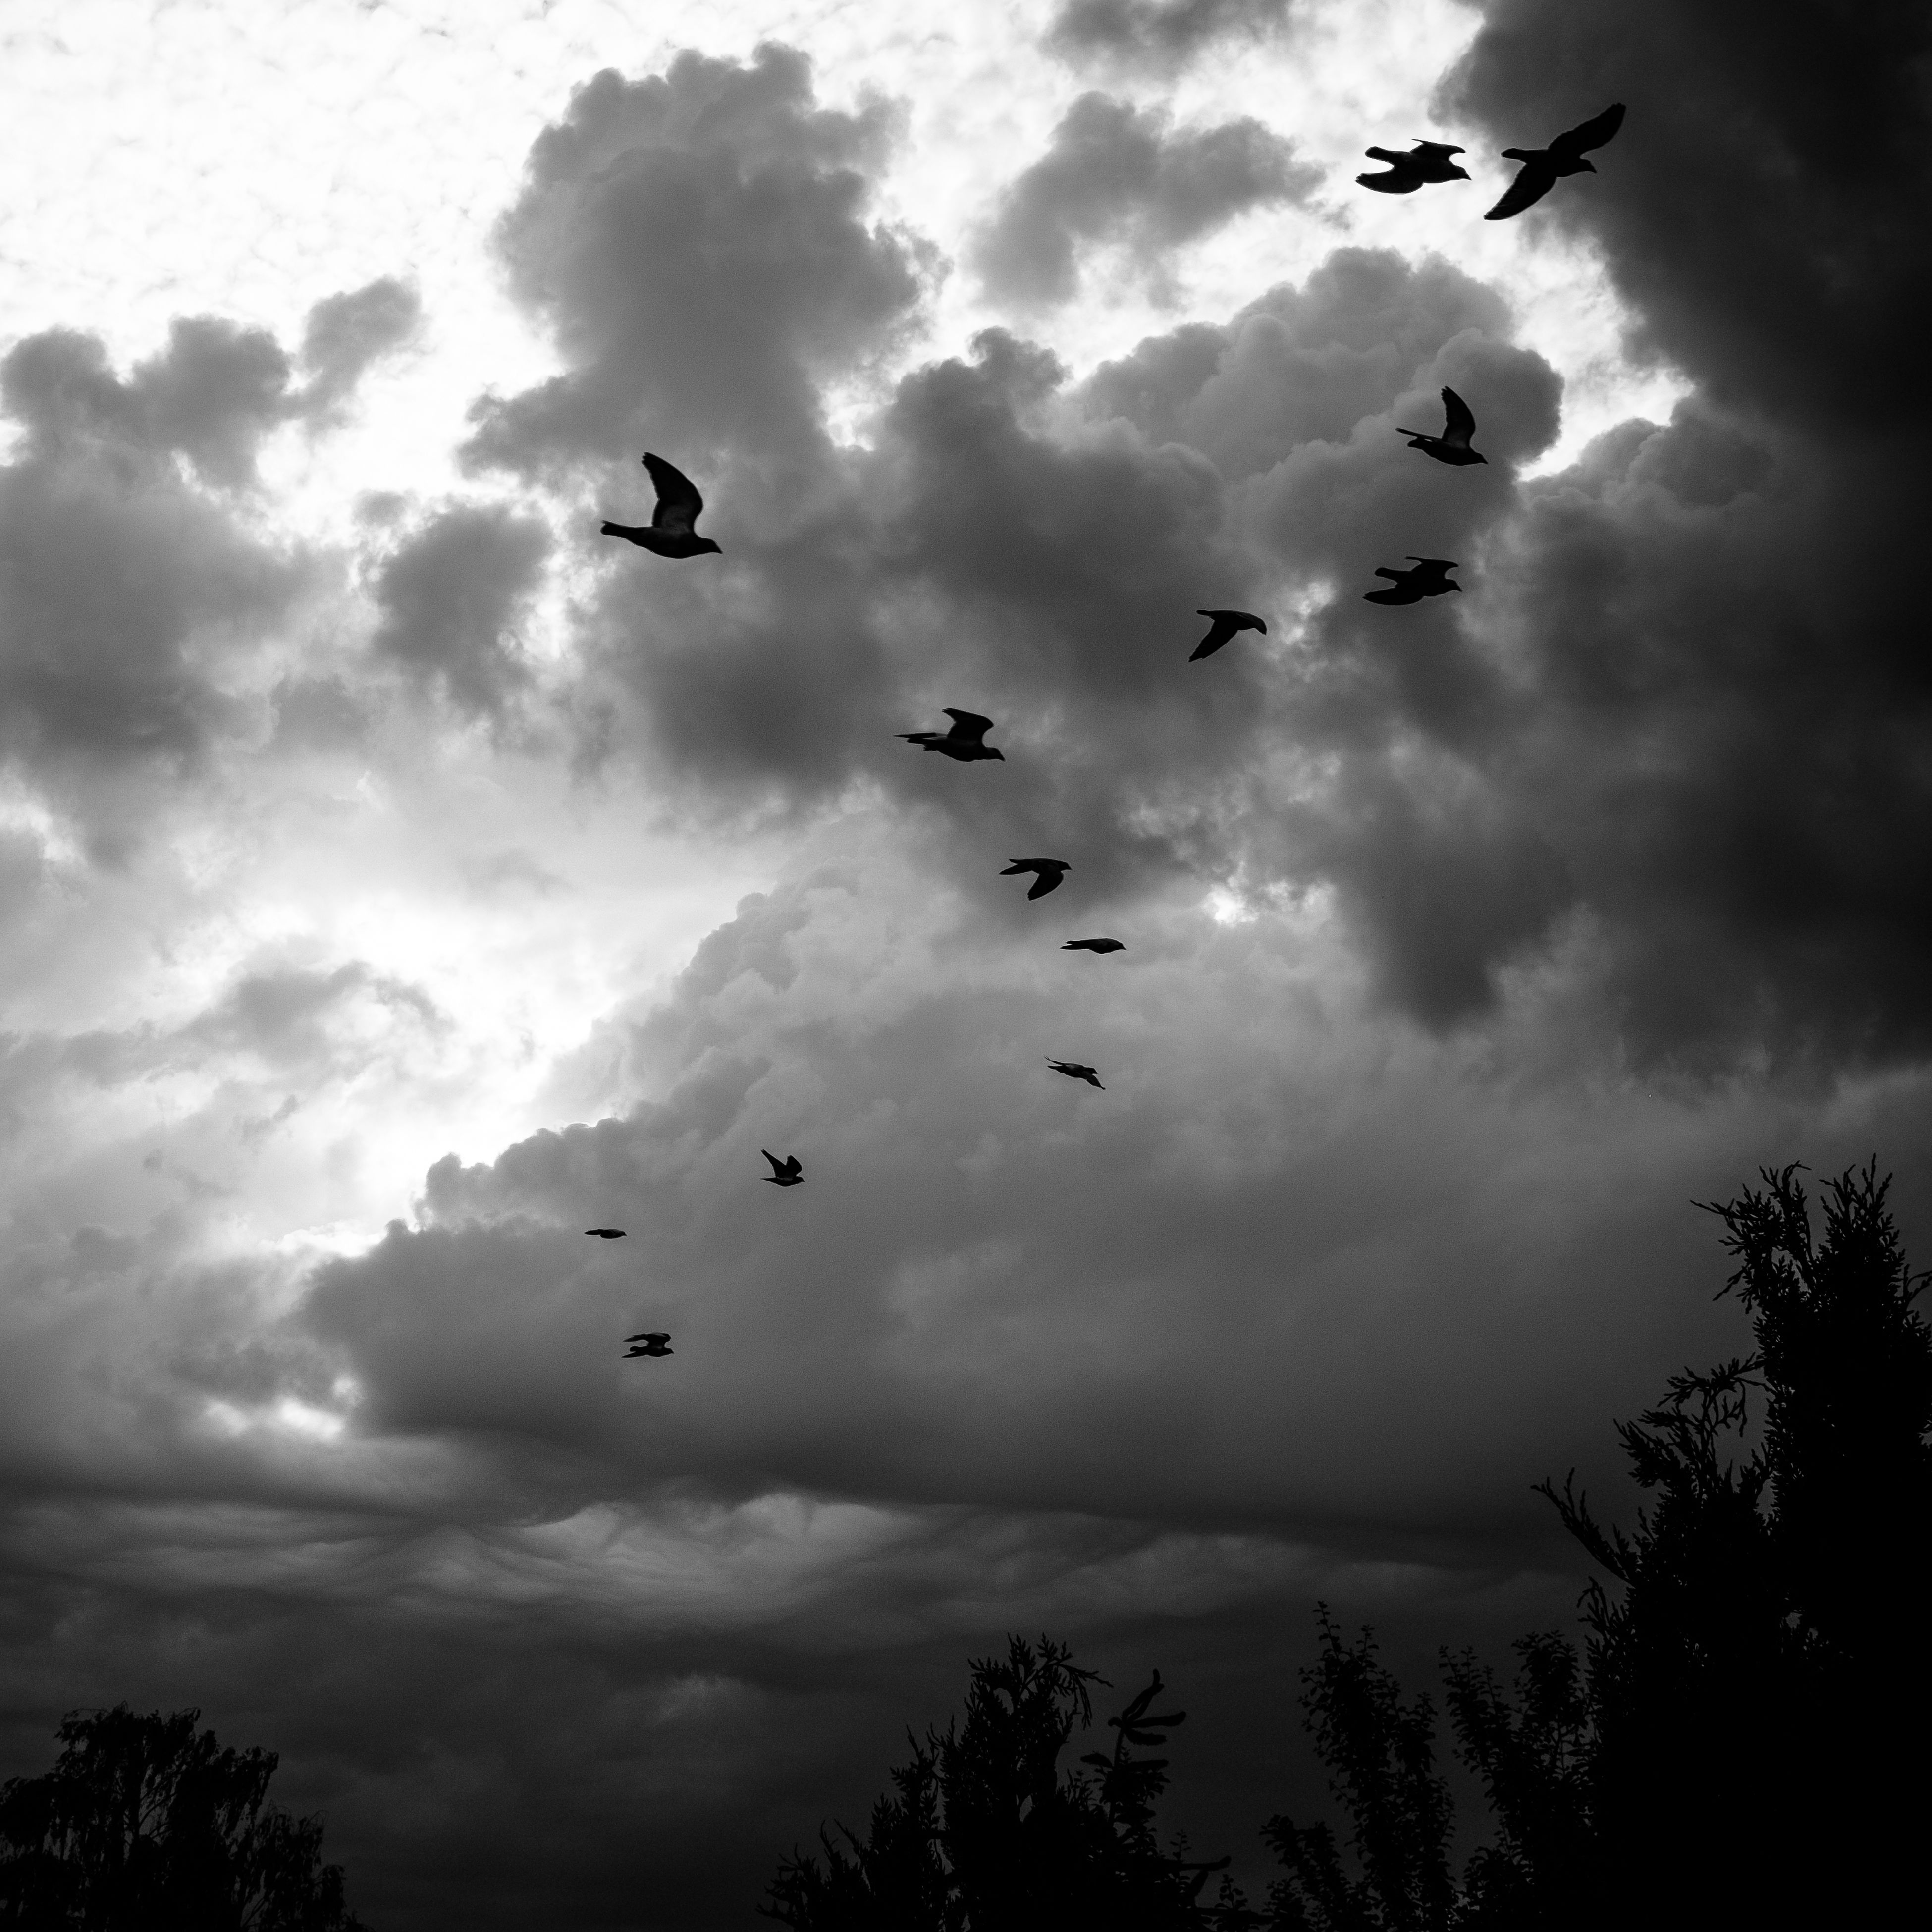 flying, bird, animal themes, cloud - sky, mid-air, sky, large group of animals, flock of birds, animals in the wild, low angle view, no people, nature, outdoors, silhouette, spread wings, migrating, animal wildlife, togetherness, beauty in nature, storm cloud, day